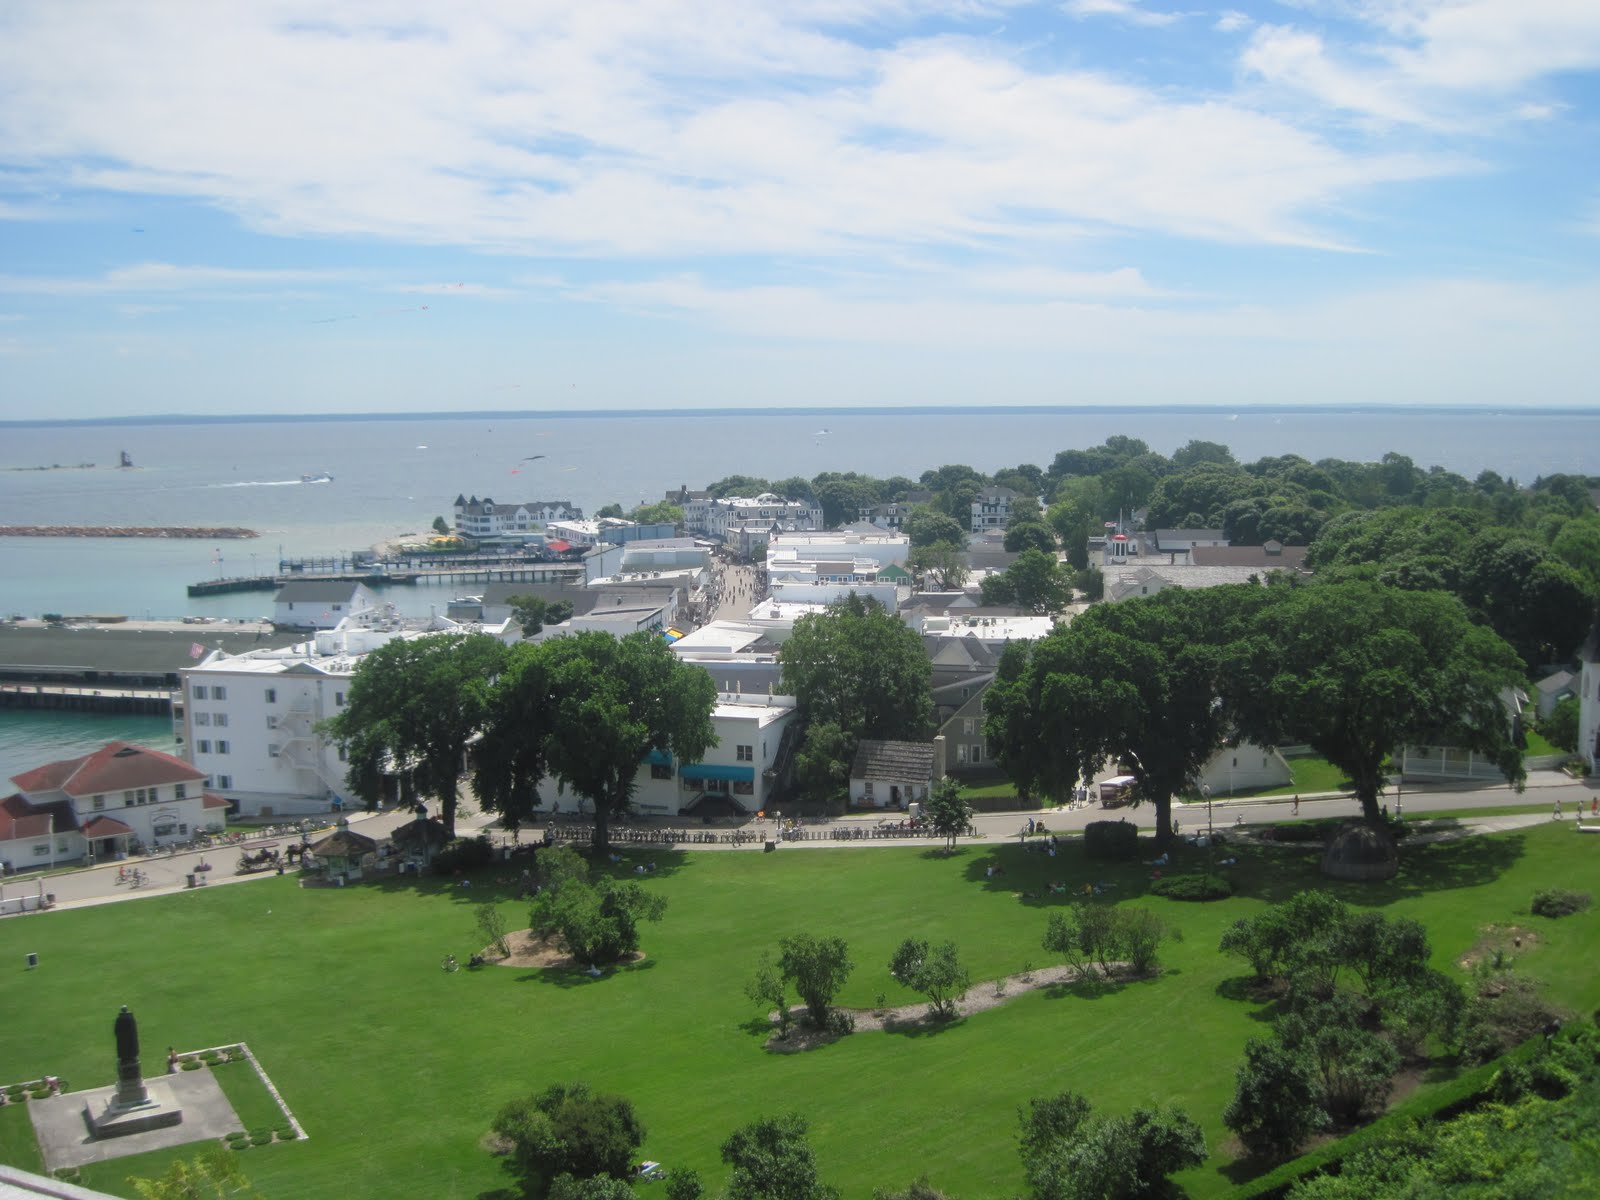 Download this Haldimand Bay Many The Island Popular Sites Fort Mackinac picture